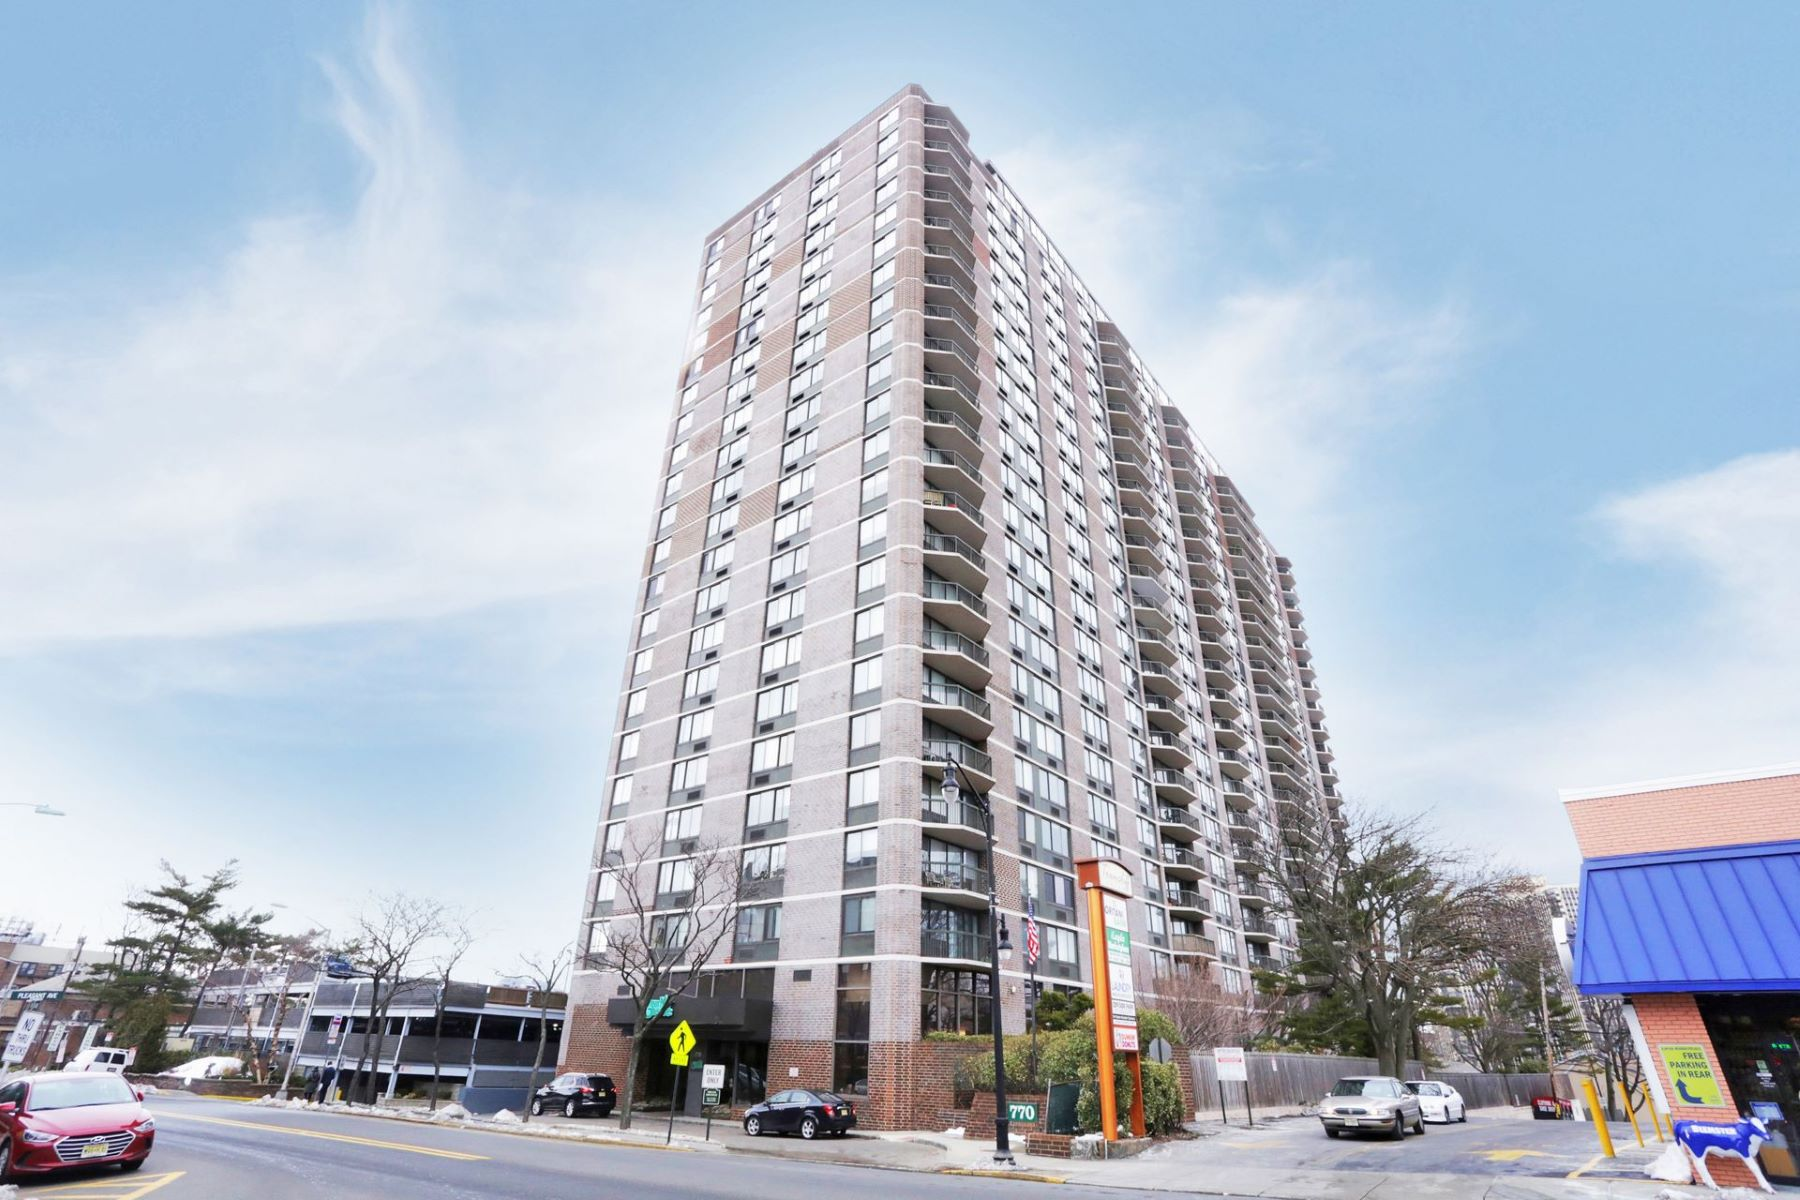 Condominium for Sale at Completely Renovated! 770 Anderson Ave 11P, Cliffside Park, New Jersey 07010 United States